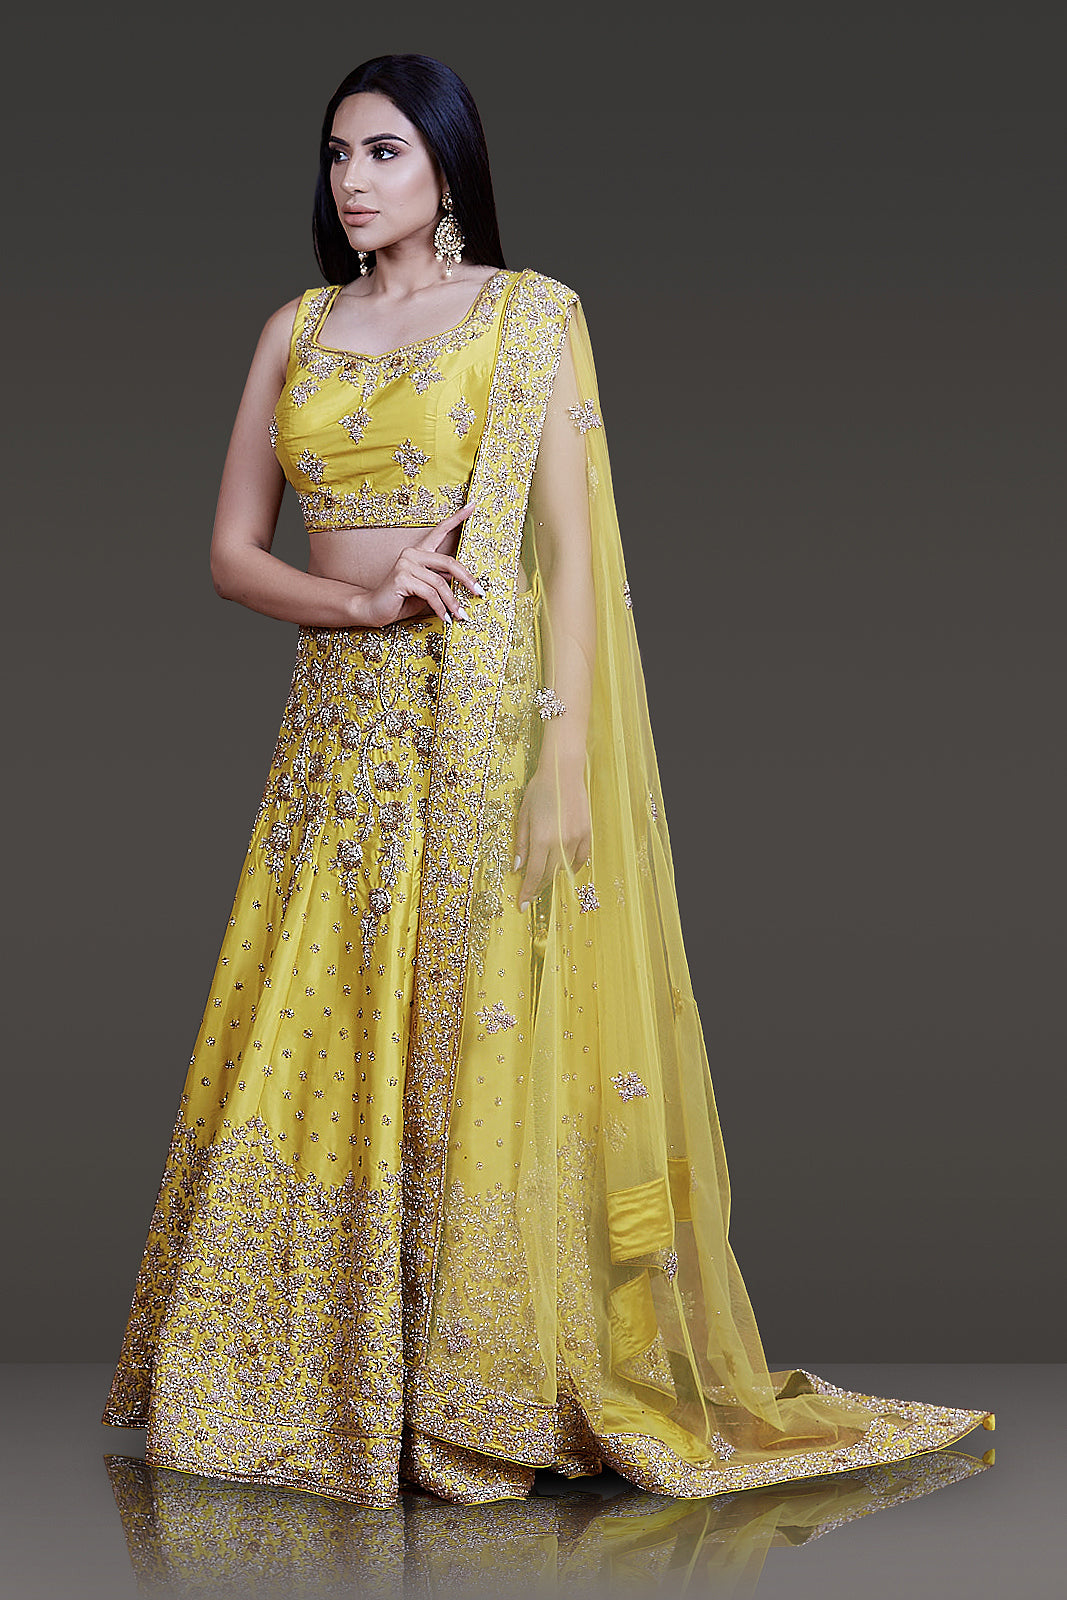 Bright Yellow Taffeta Silk Lehenga-Top-Dupatta Embossed with Ivory Gold and Stone Work